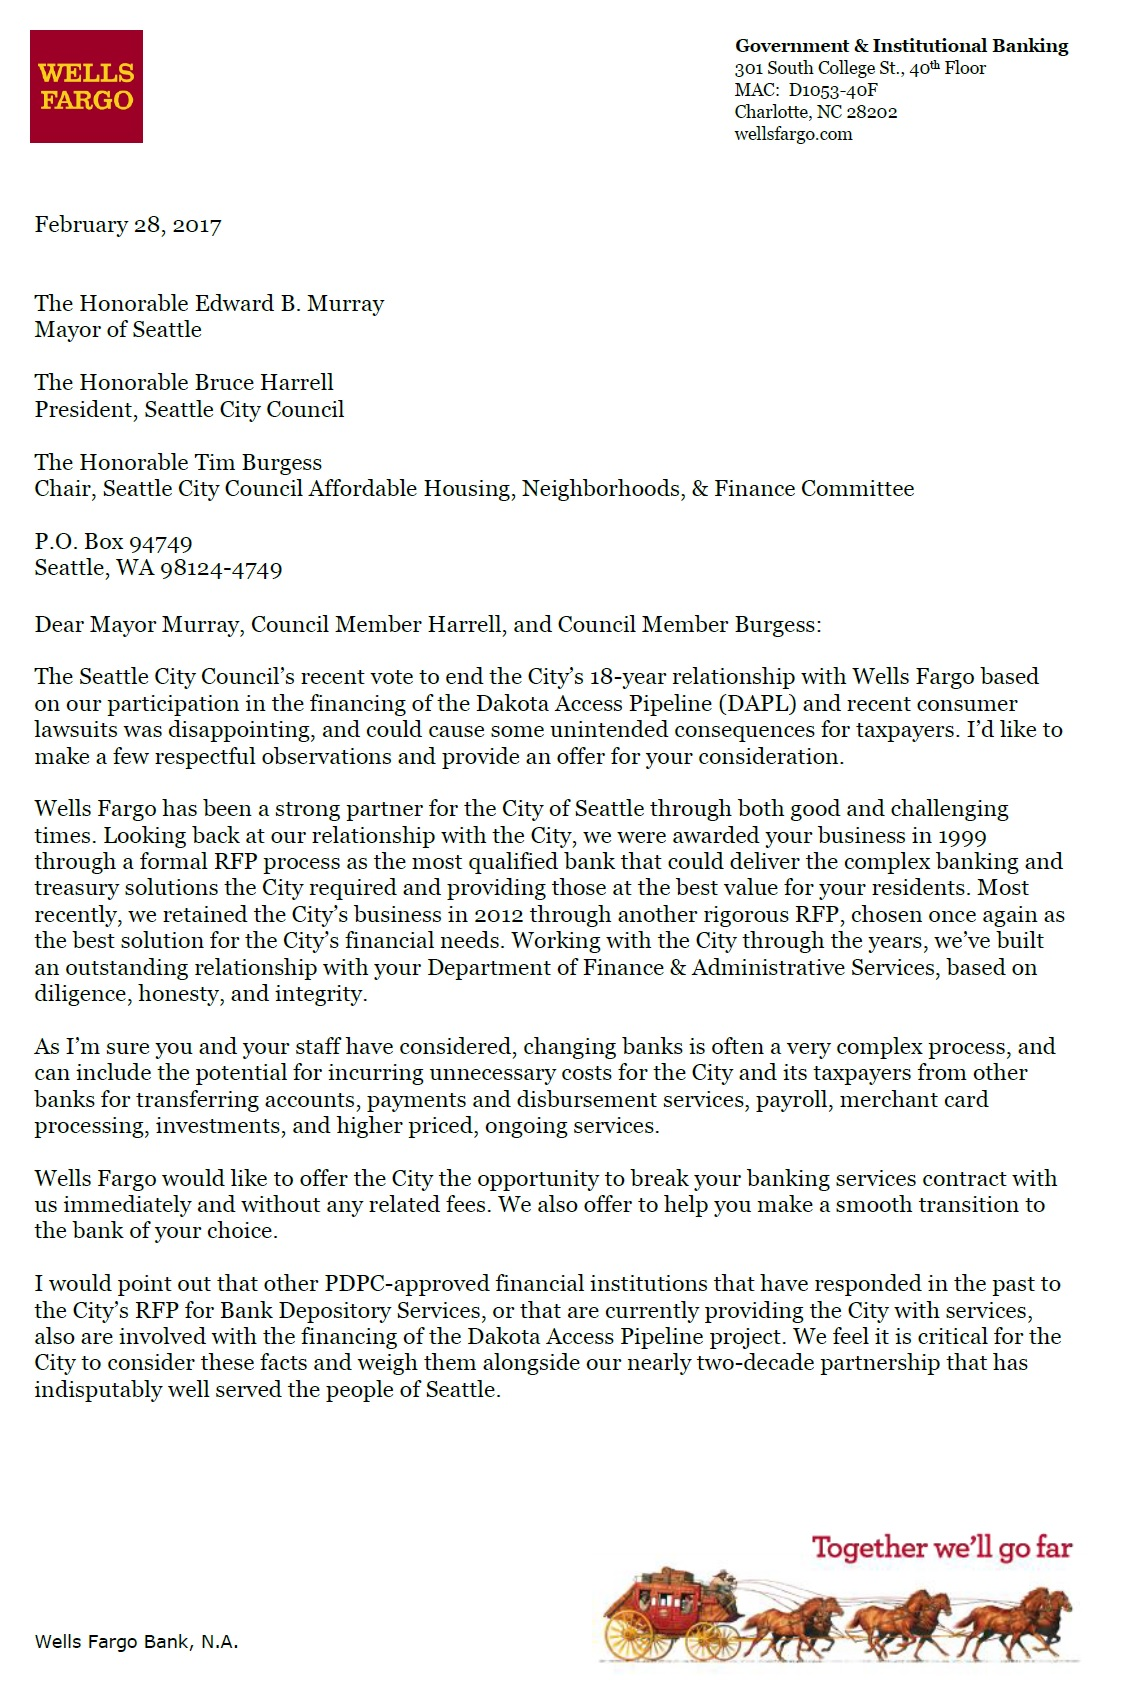 Wells Fargo Sends New Letter To City Offers To End